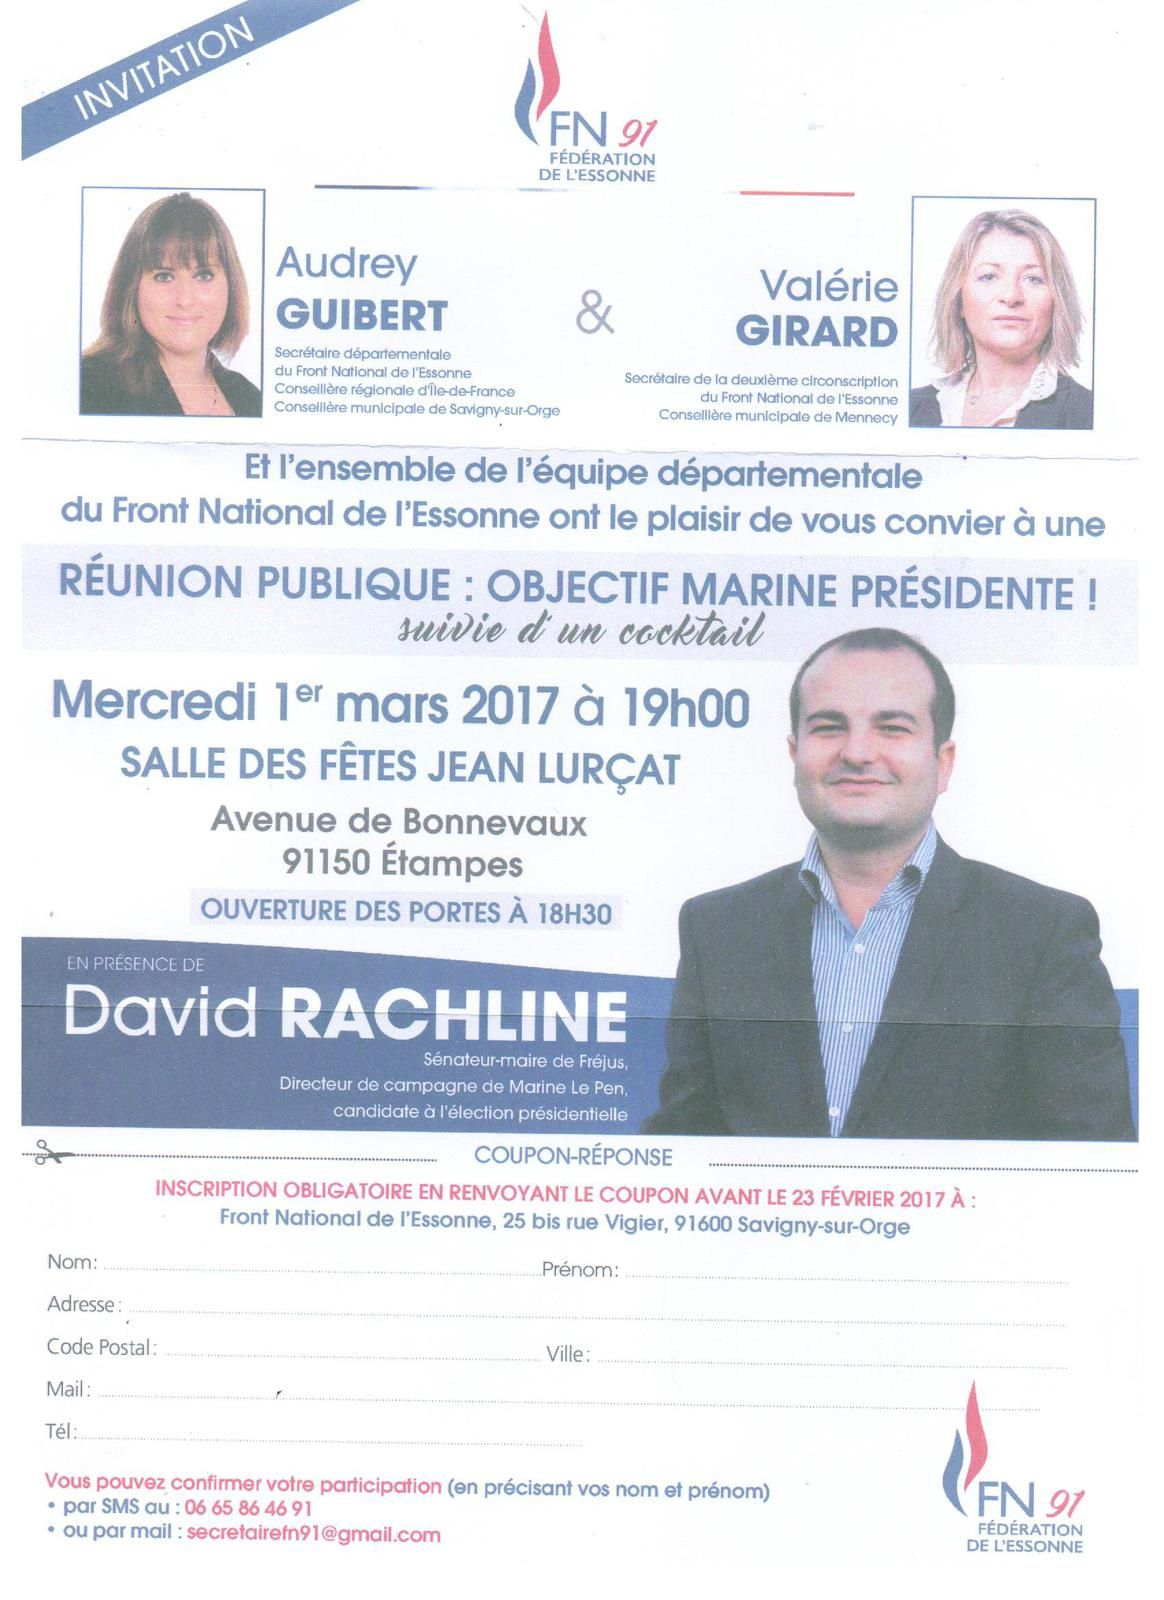 MEETING AVEC DAVID RACHLINE A ETAMPES !